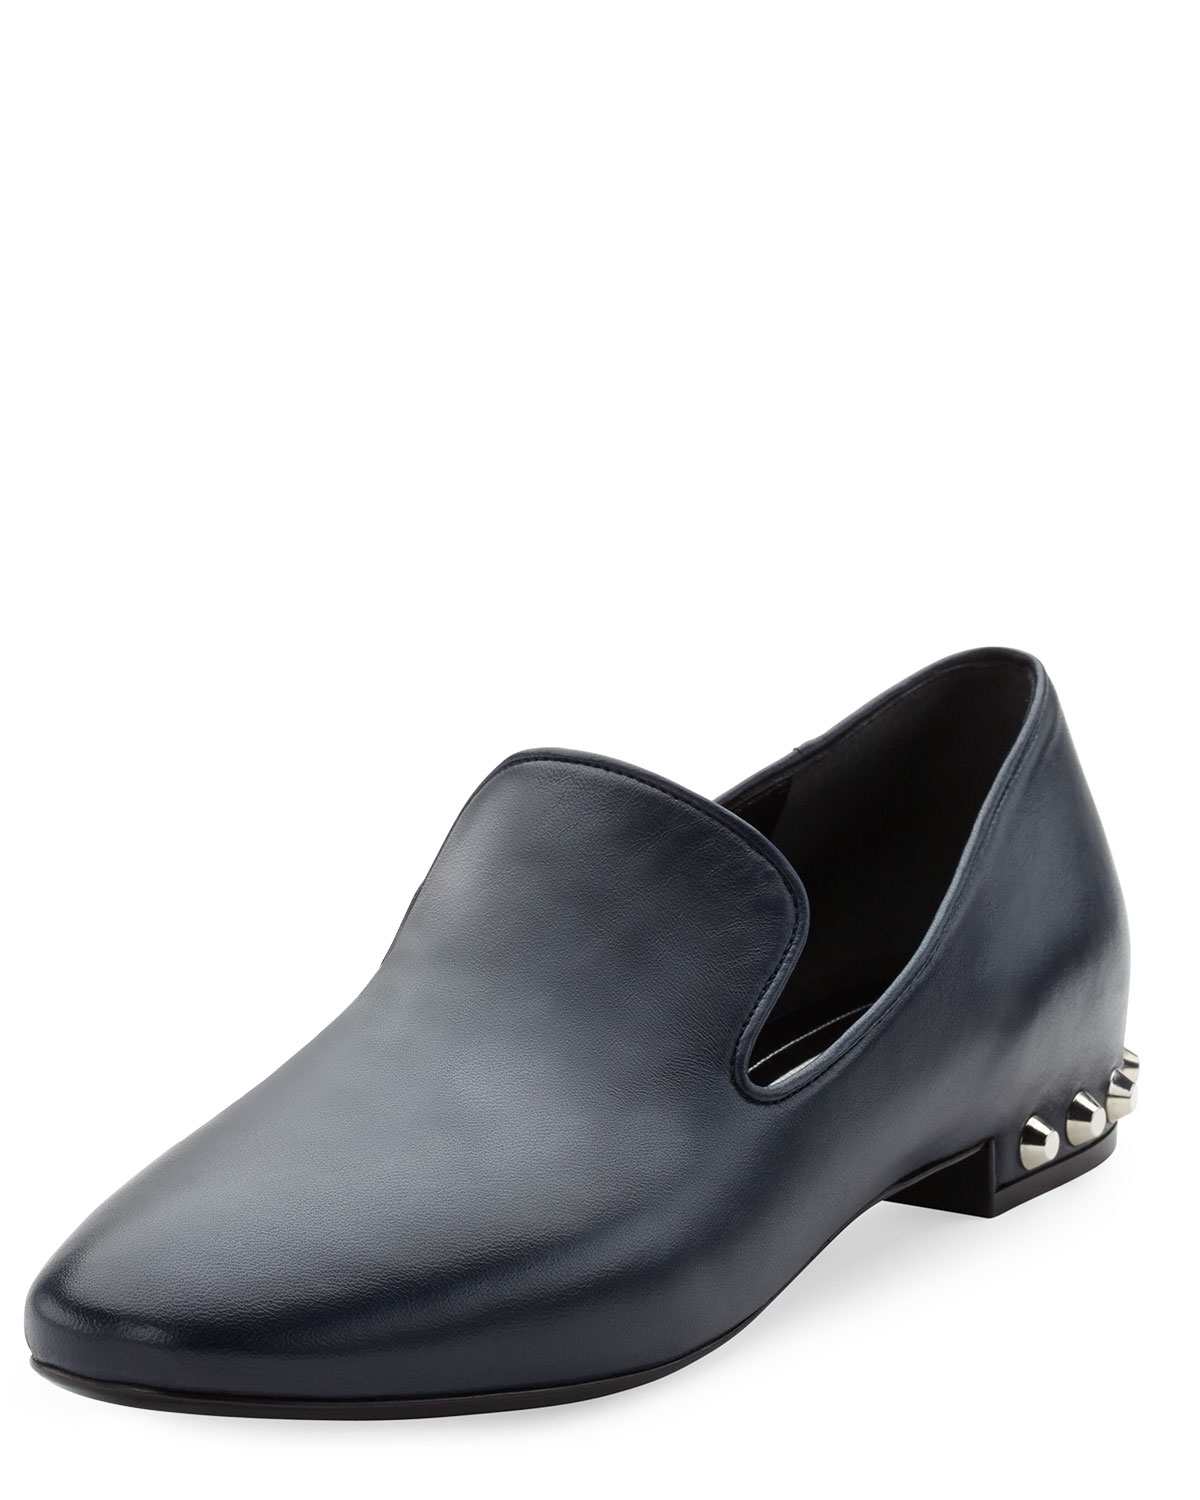 discount excellent Balenciaga Stud-Heeled Leather Loafers classic best store to get for sale zLkZsn